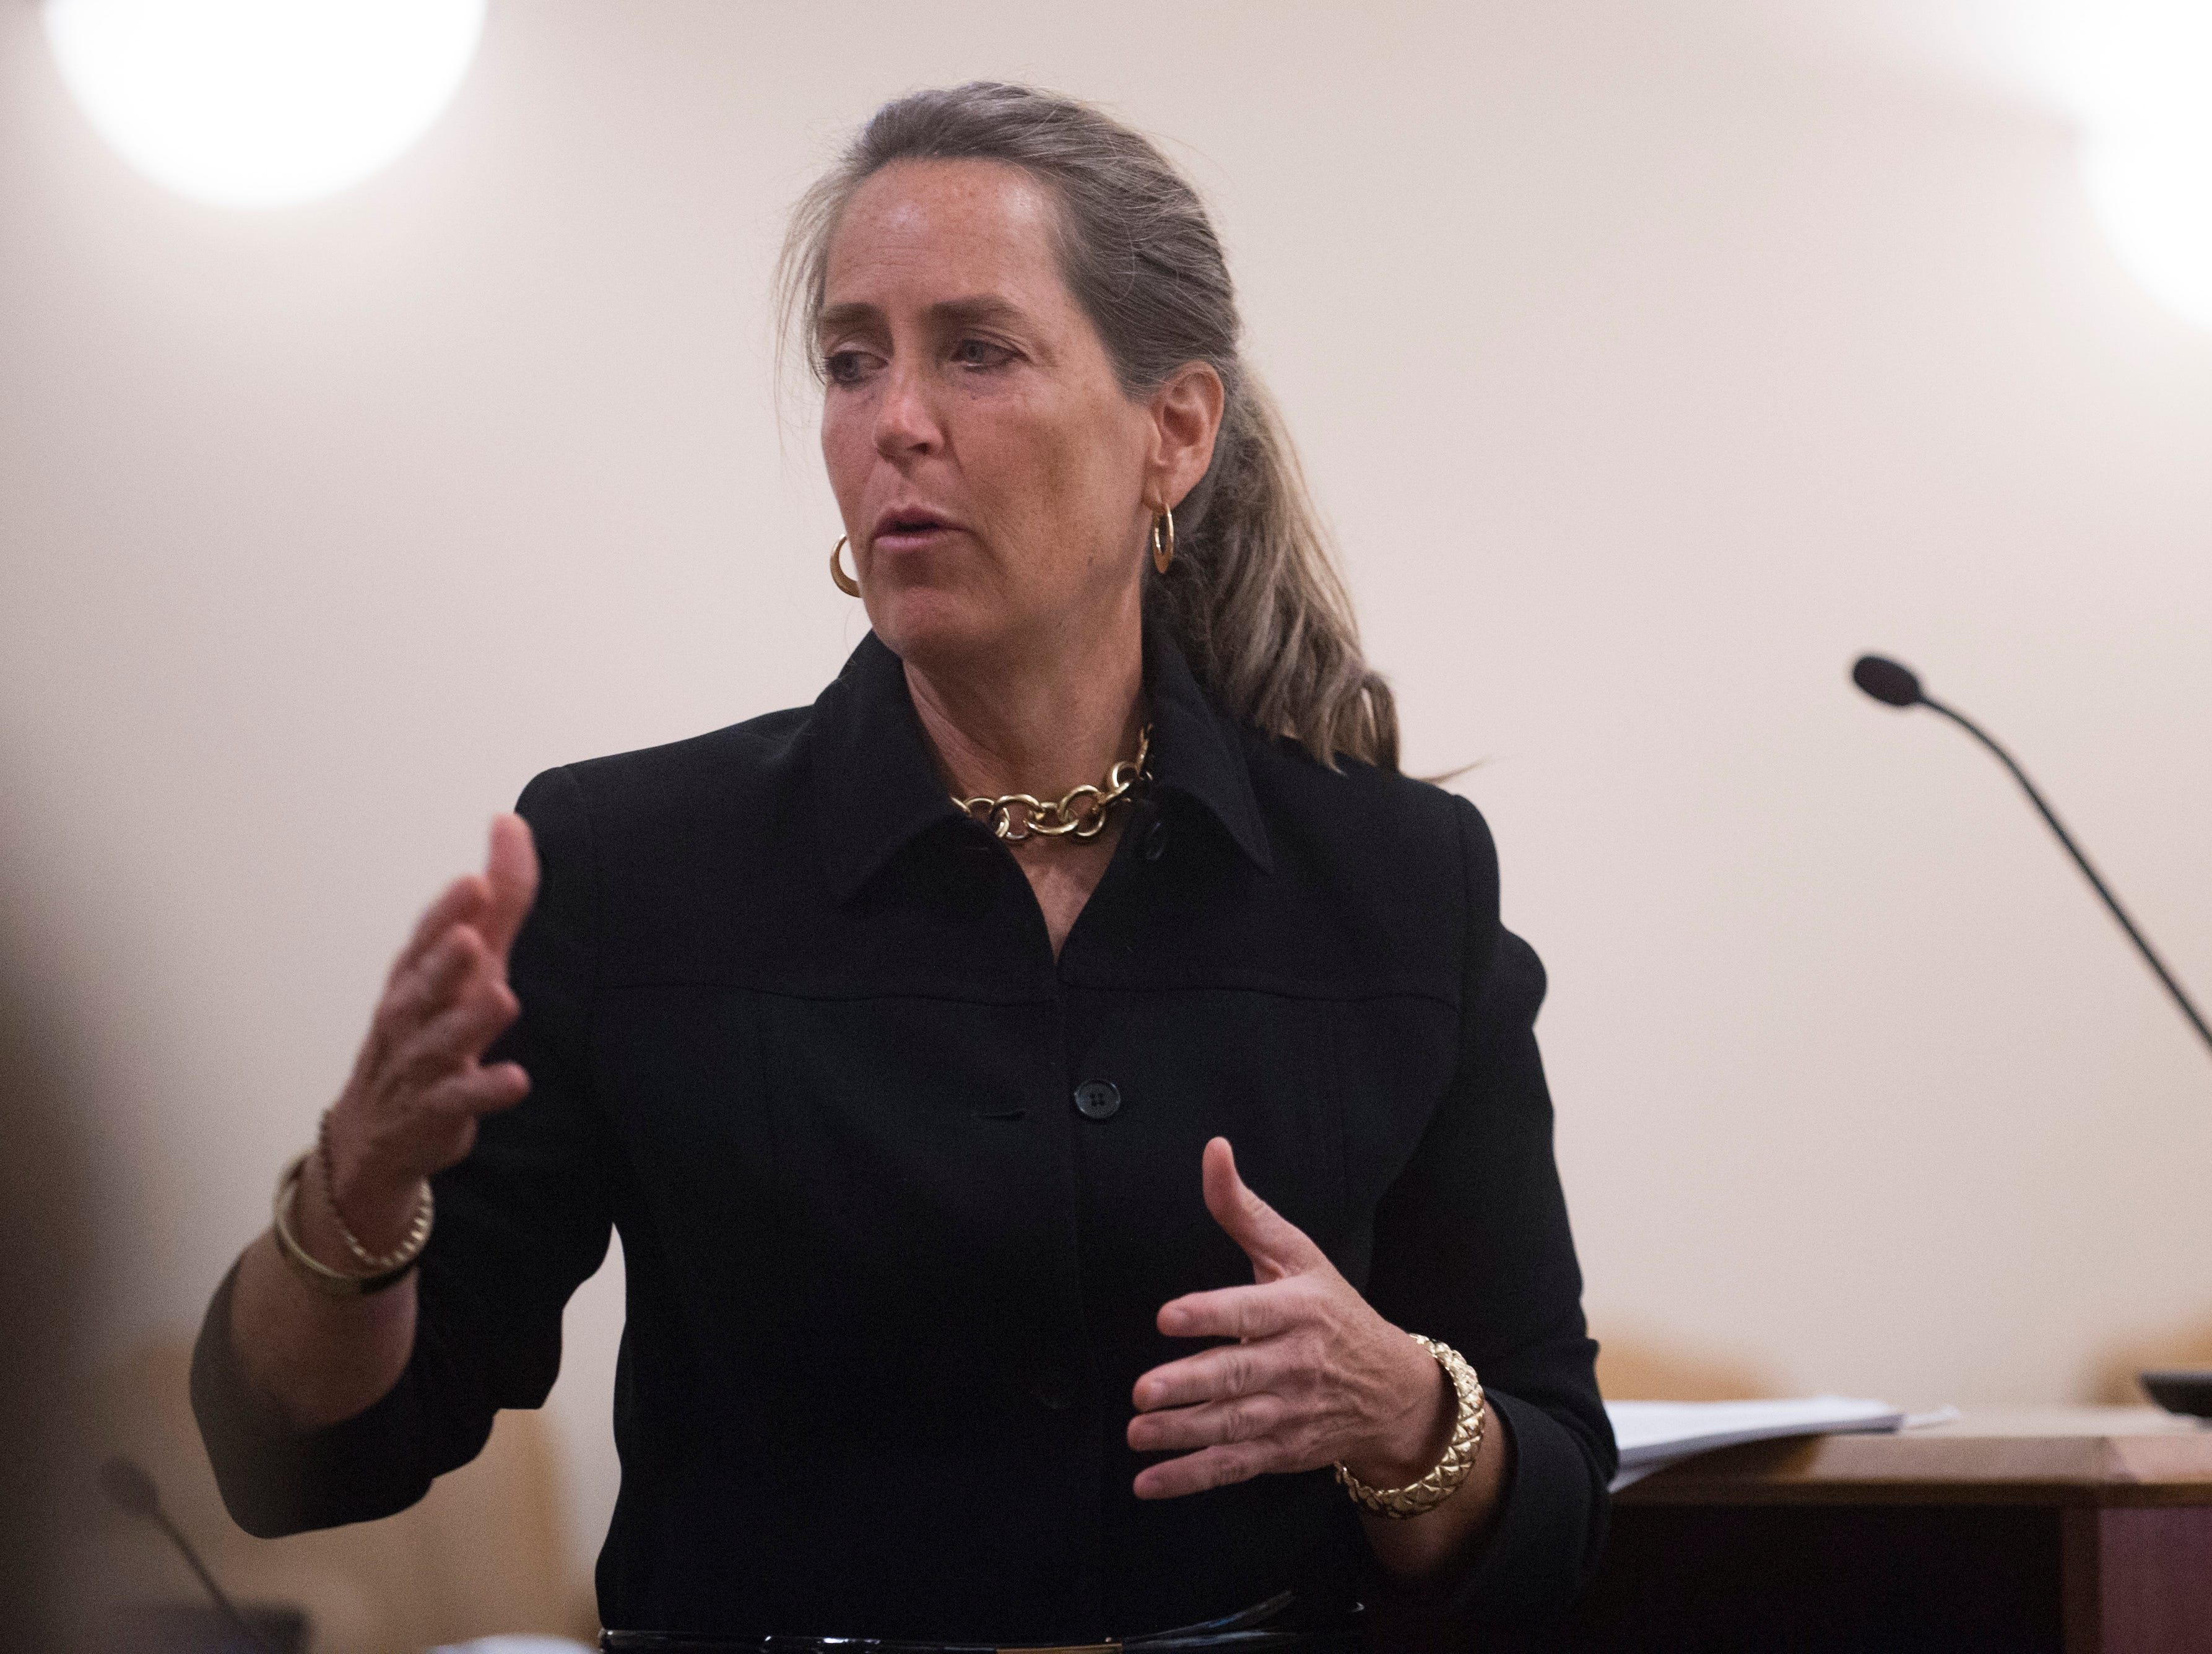 Defense Attorney Kathryn Hay speaks to the court during a hearing for Joshua Baker at Larimer County Justice Center on Thursday, September 20, 2018. Baker, of Ohio, was sentenced to 23 years in prison for his role in the robbery and murder of Devon Smeltz in 2016.